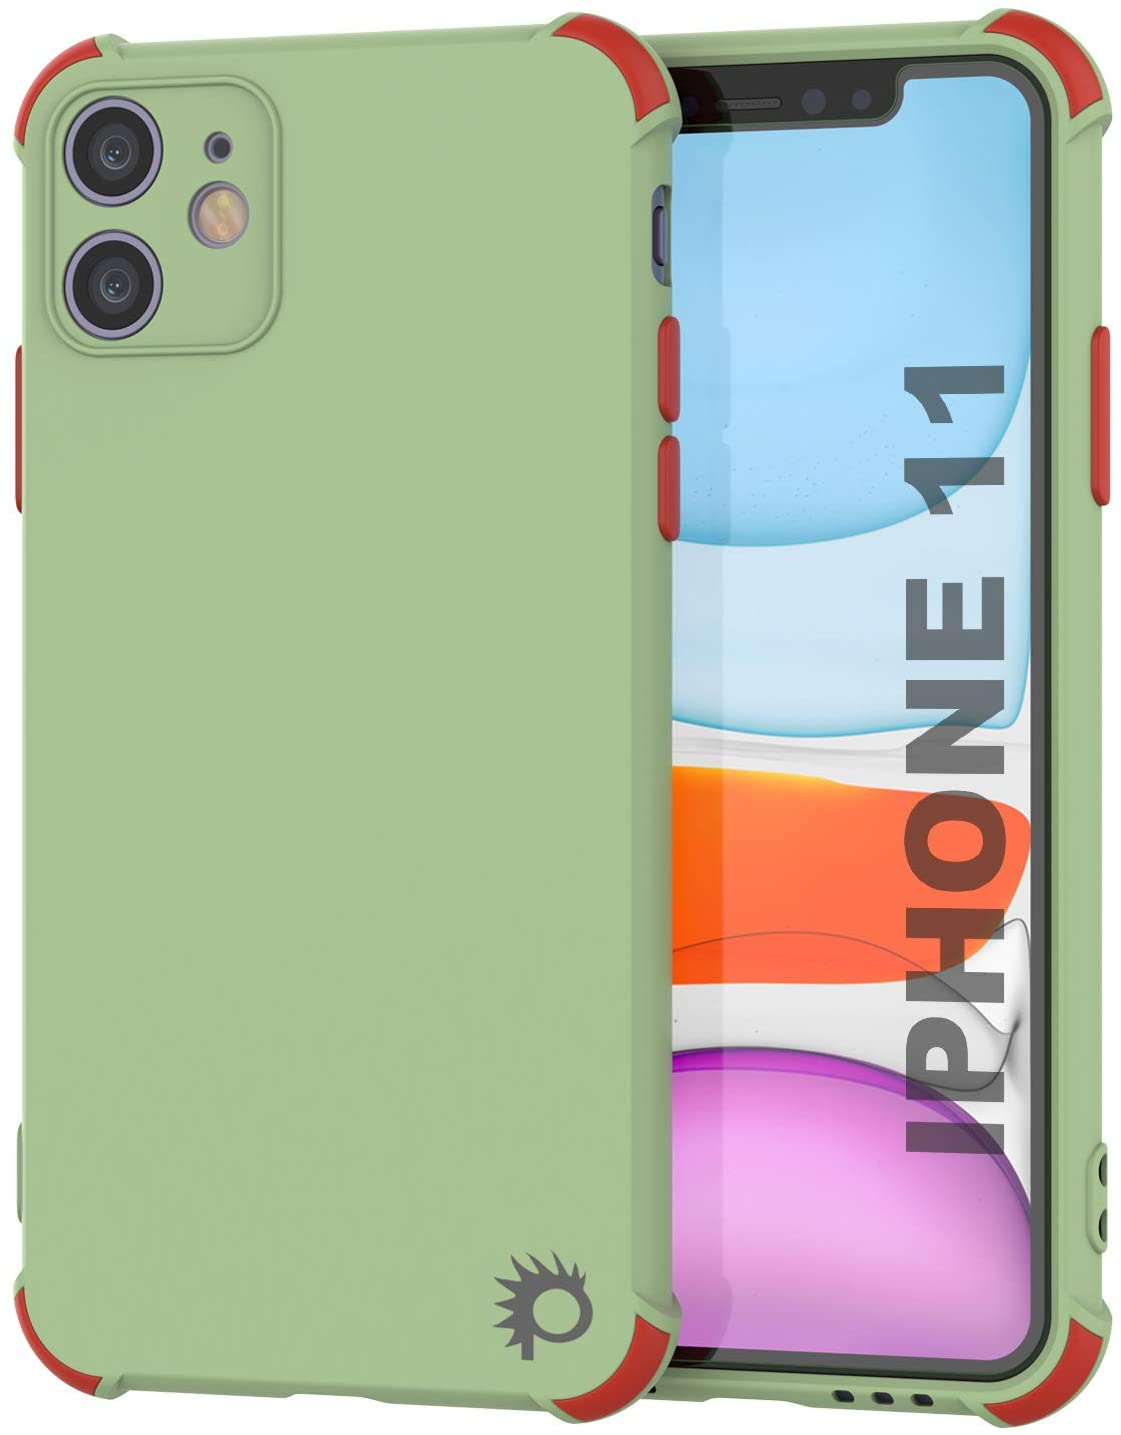 Punkcase Protective & Lightweight TPU Case [Sunshine Series] for iPhone 11 [Light Green]